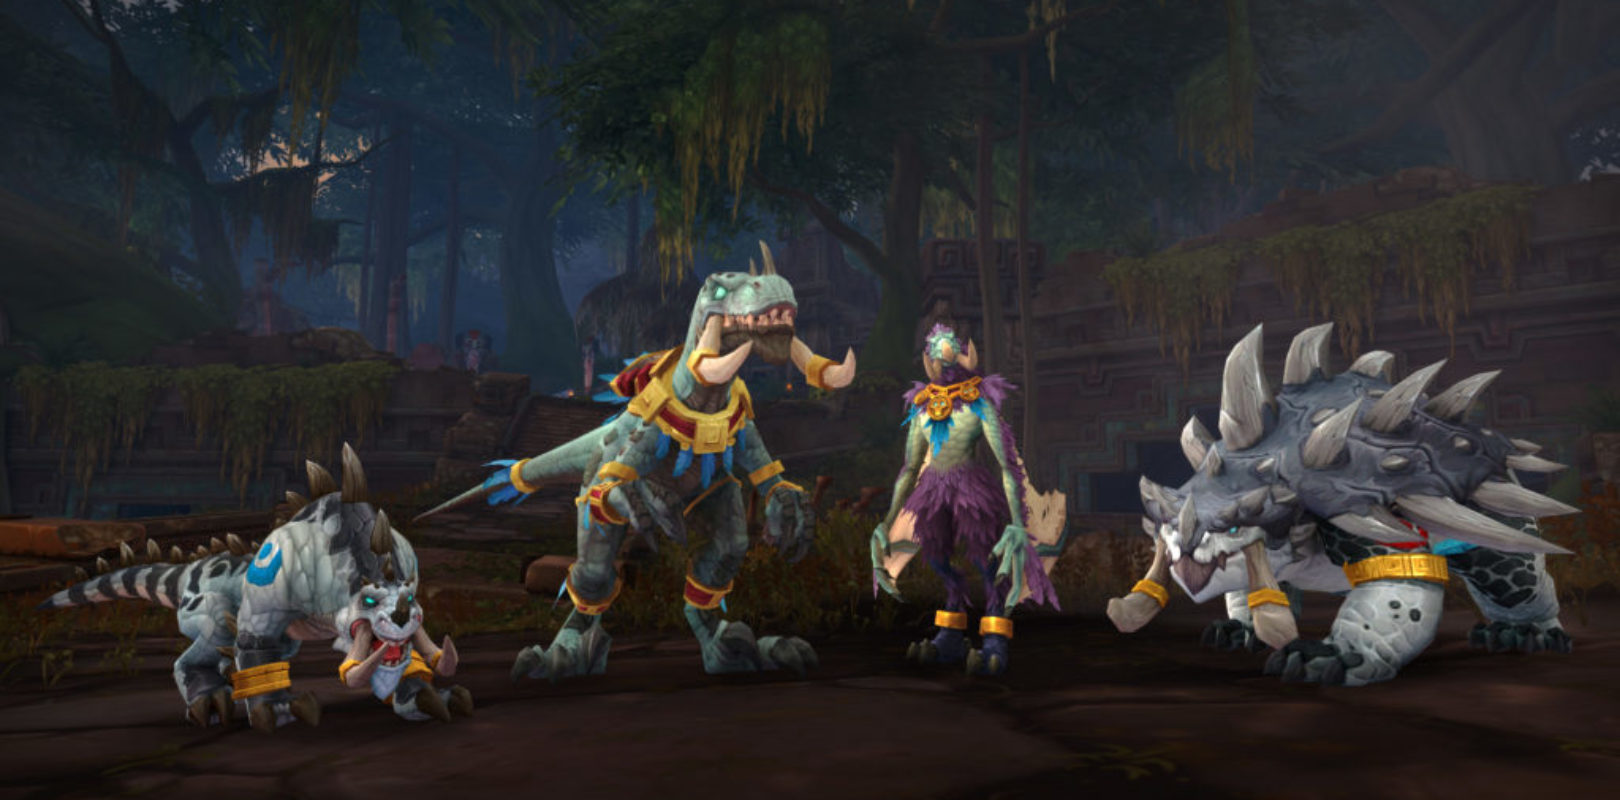 New WoW: Battle For Azeroth Patch 8.2 Adds Zandalari Druid